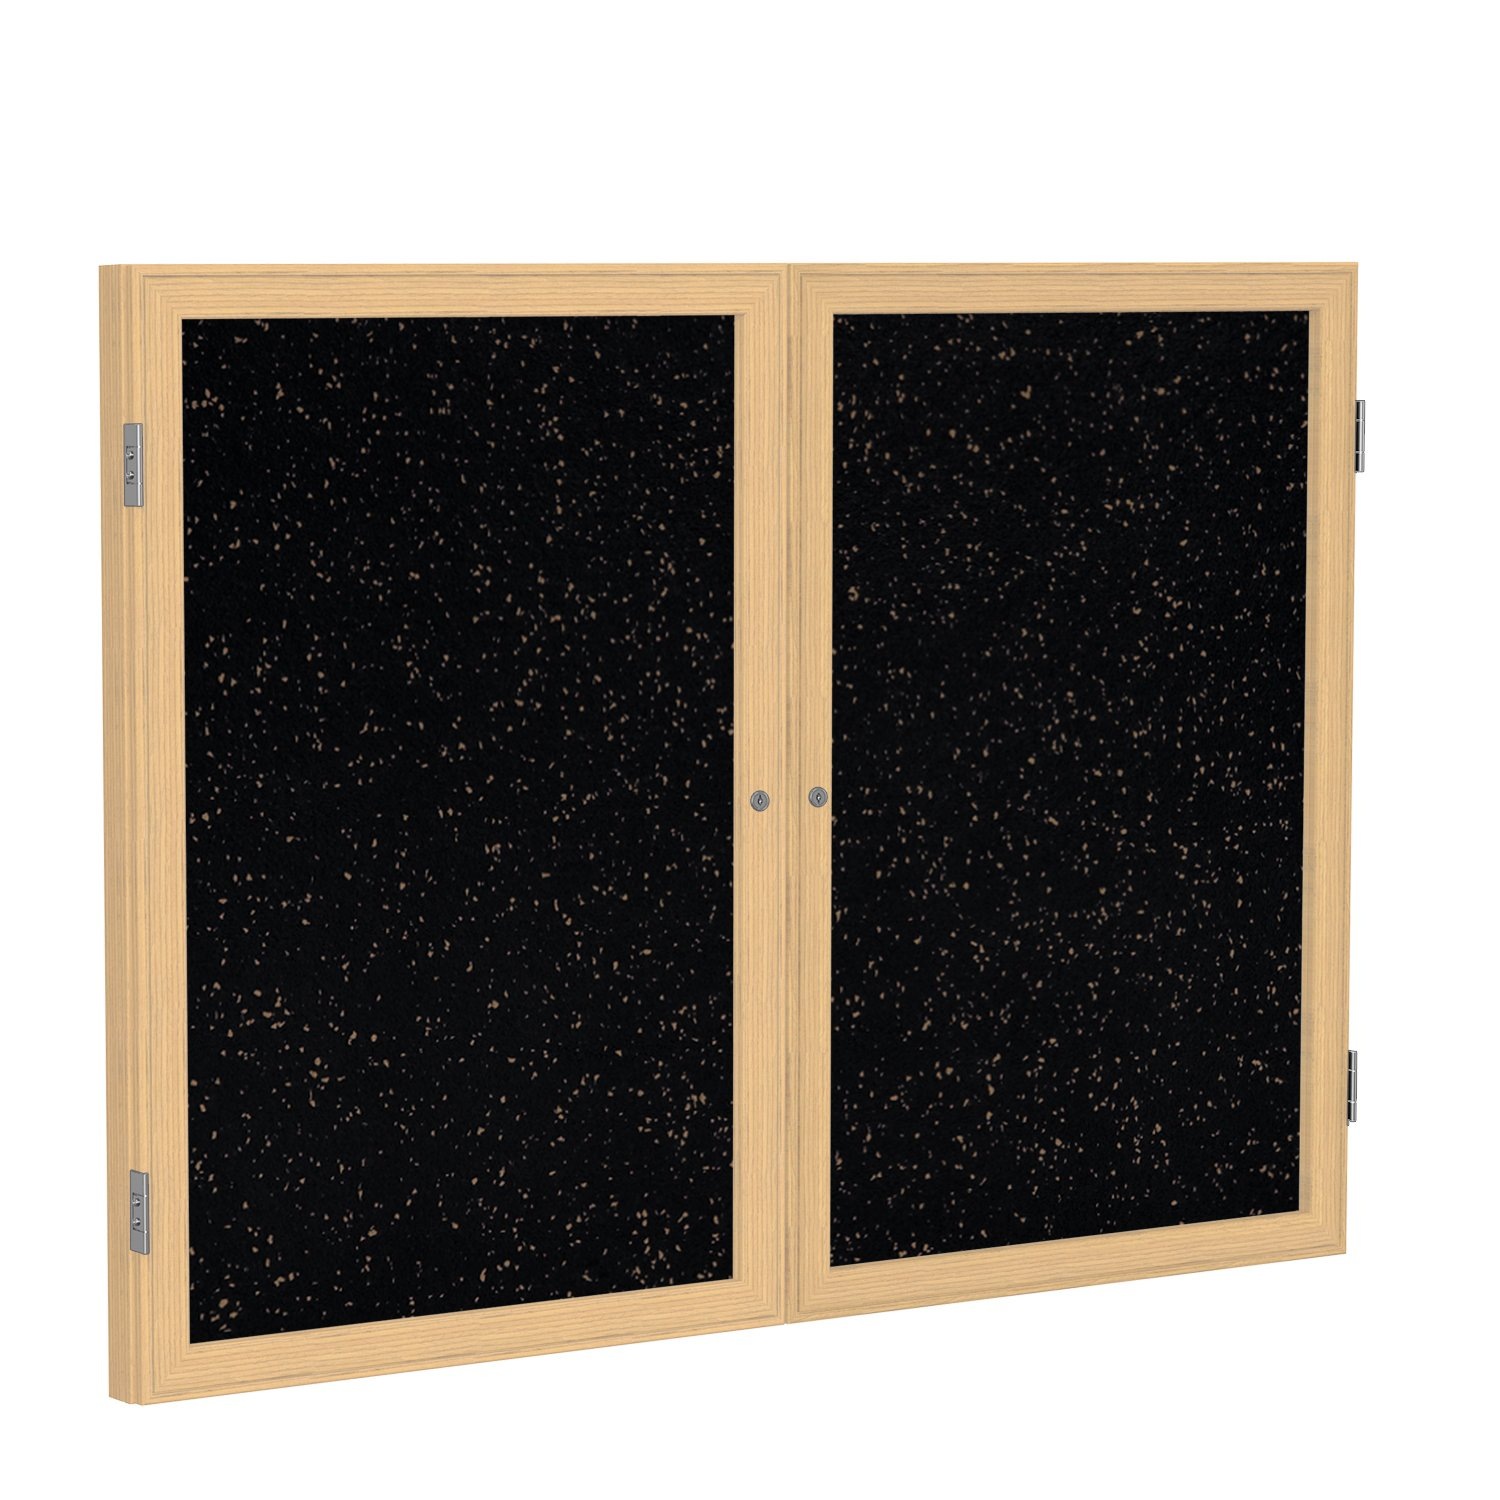 Ghent 36''x48'' 2-Door indoor Enclosed Recycled Rubber Bulletin Board, Shatter Resistant, with Lock, Wood Frame Oak Finish-Tan Speckled (PW23648TR-TN), Made in the USA